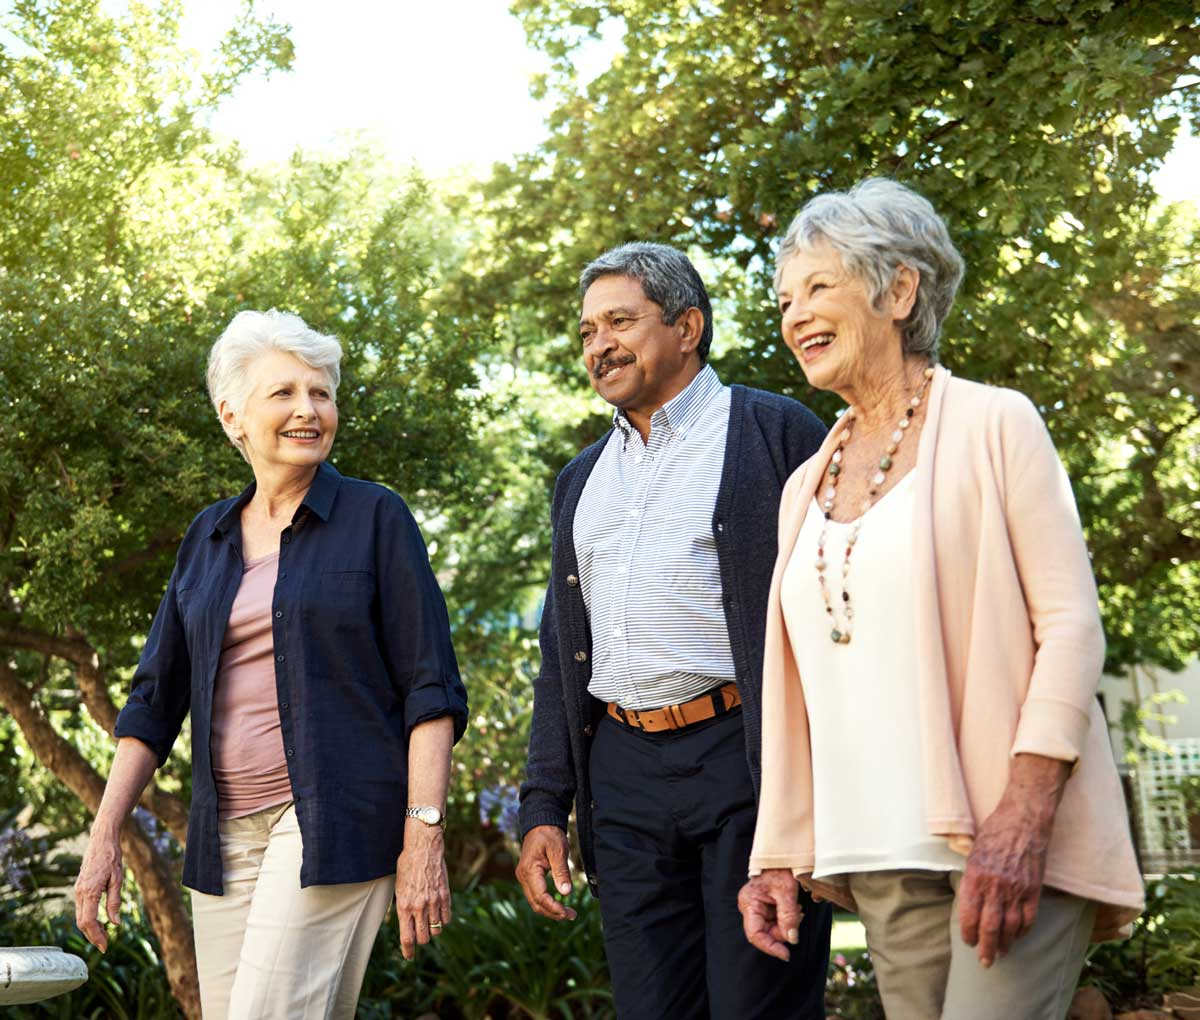 8 Essential Questions To Ask When Choosing a Senior Living Community